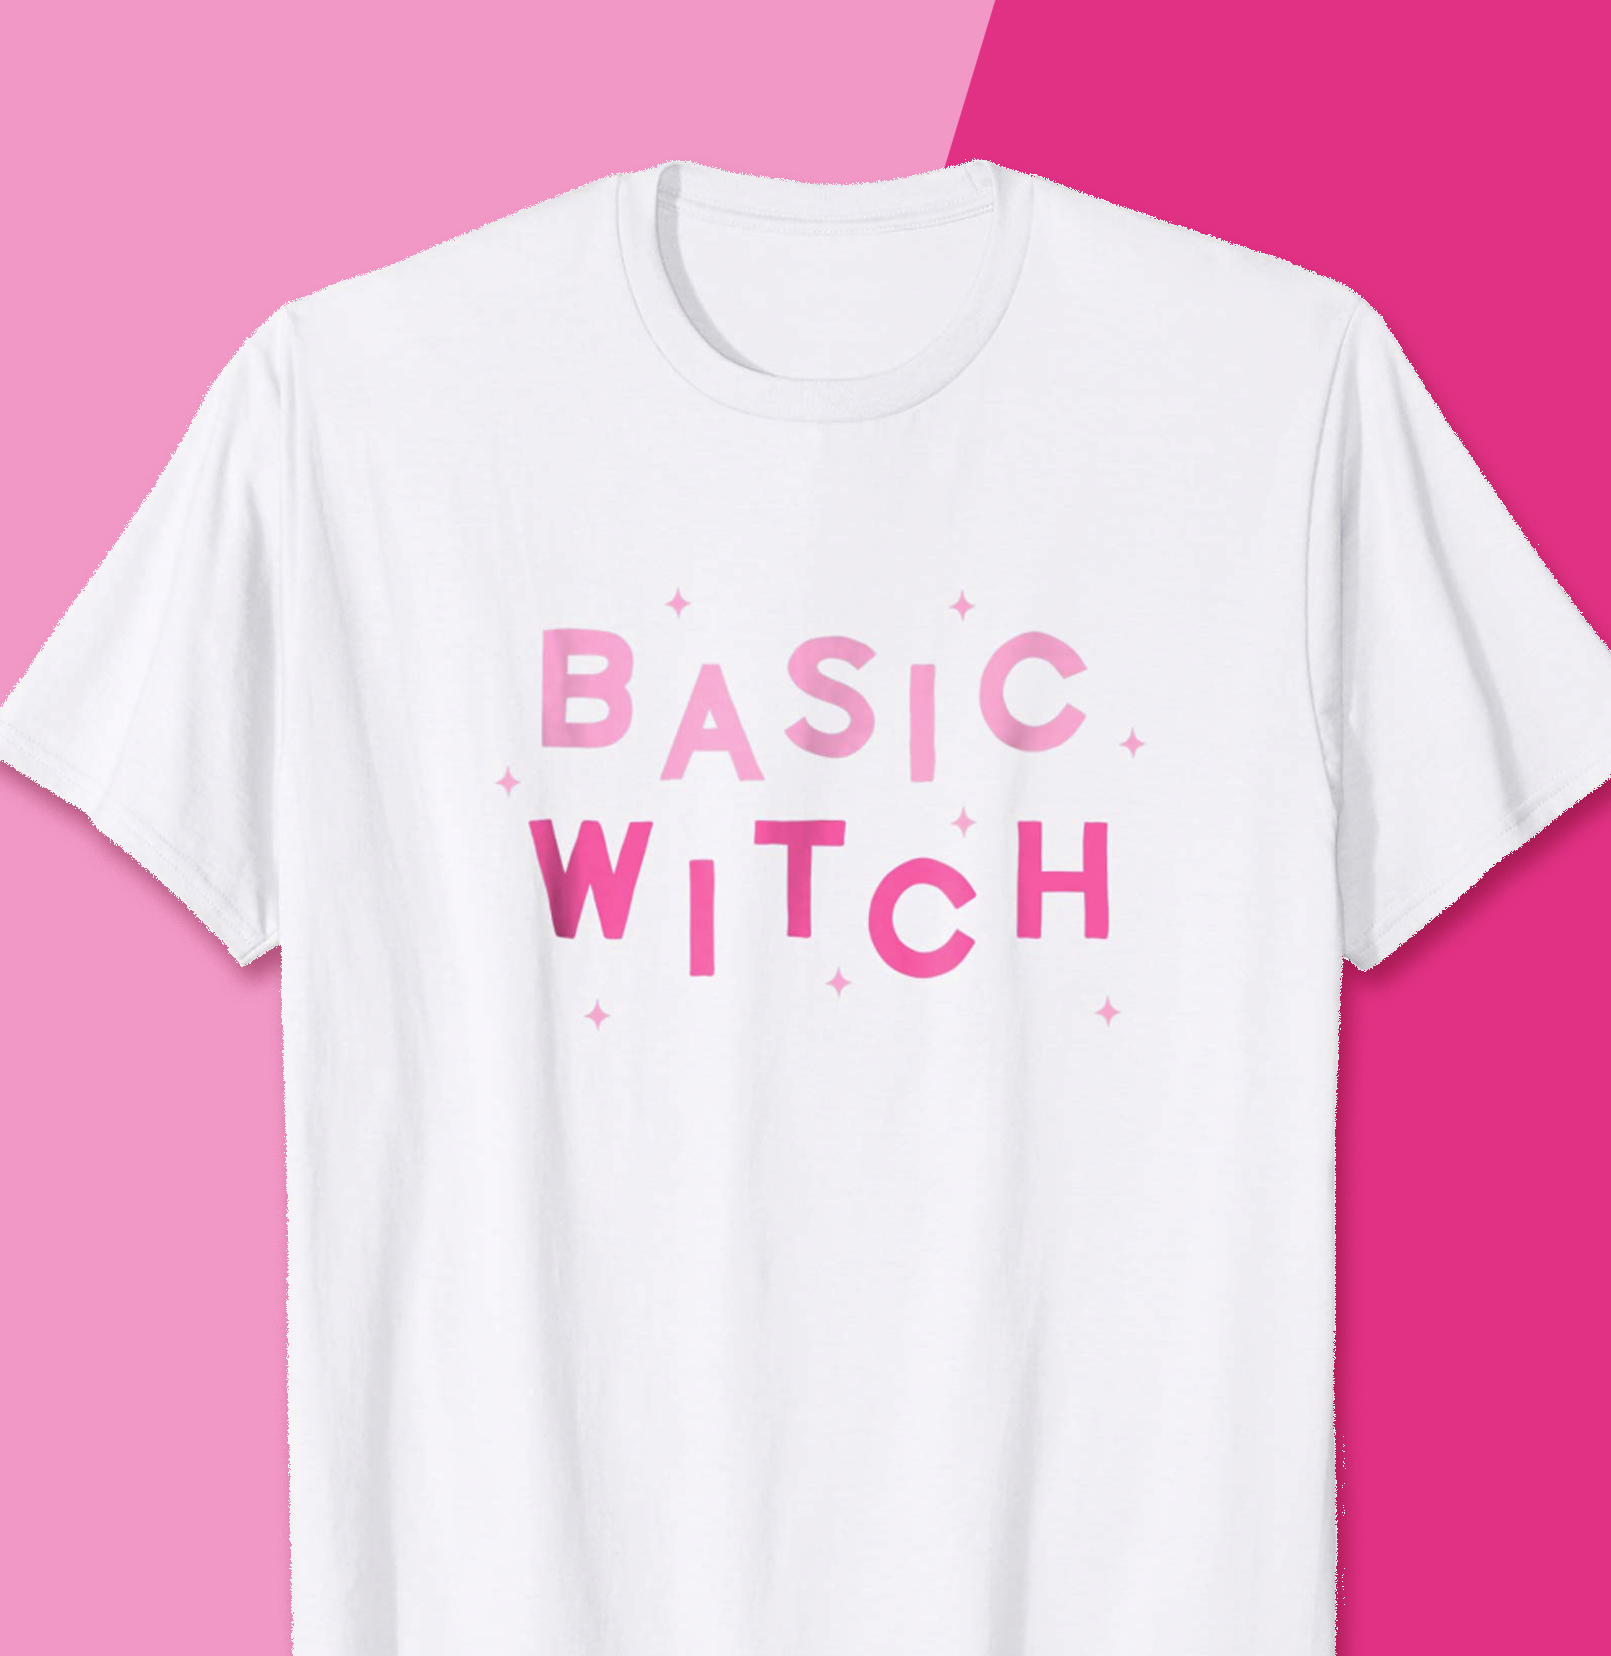 JUST A BASIC WITCH TEE  $14.99